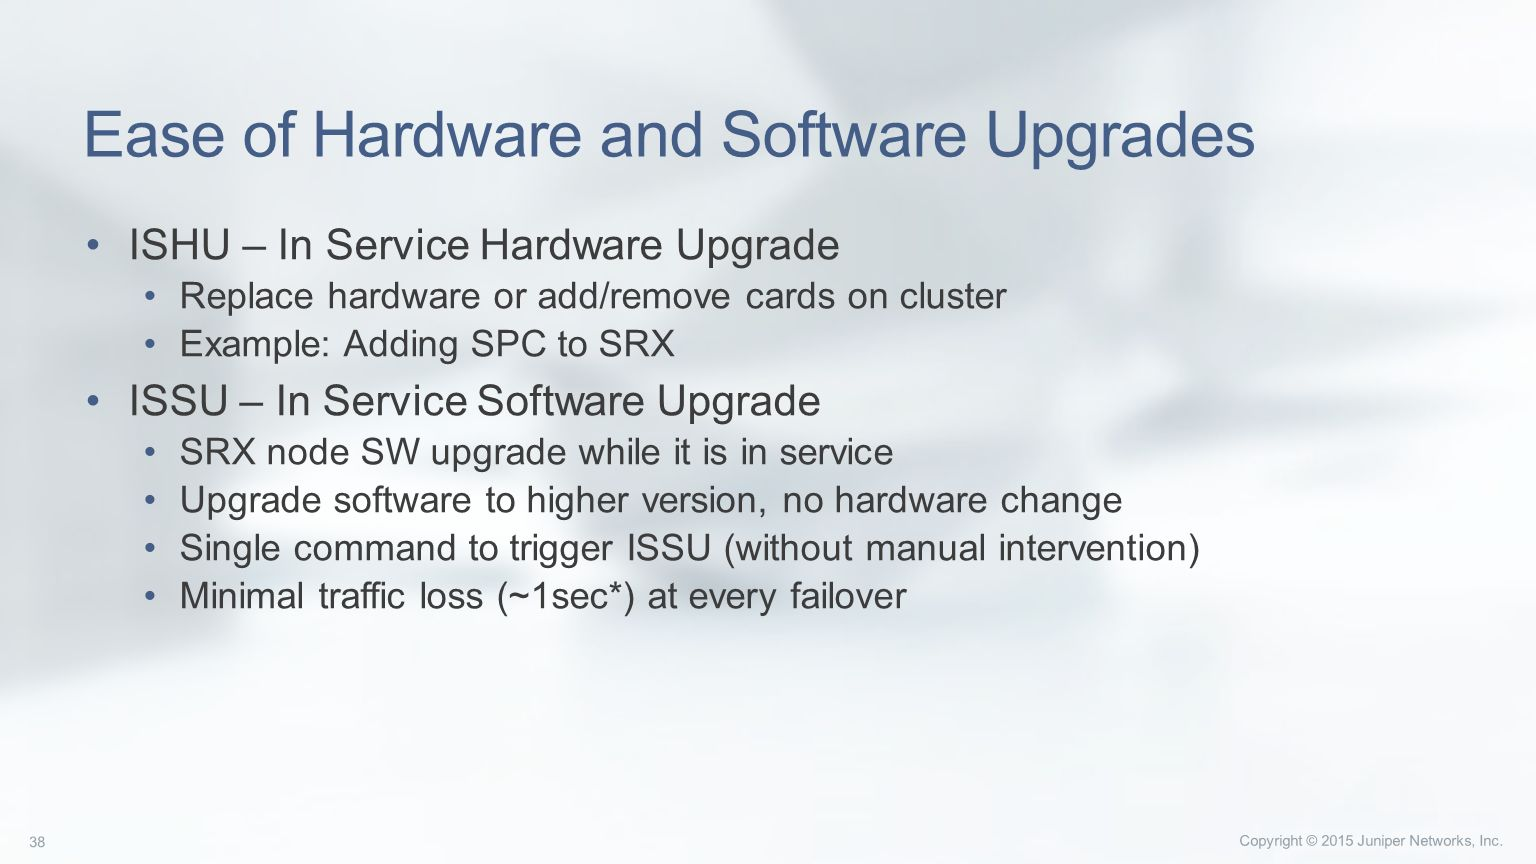 High End SRX Series Securing the Data Center  - ppt download